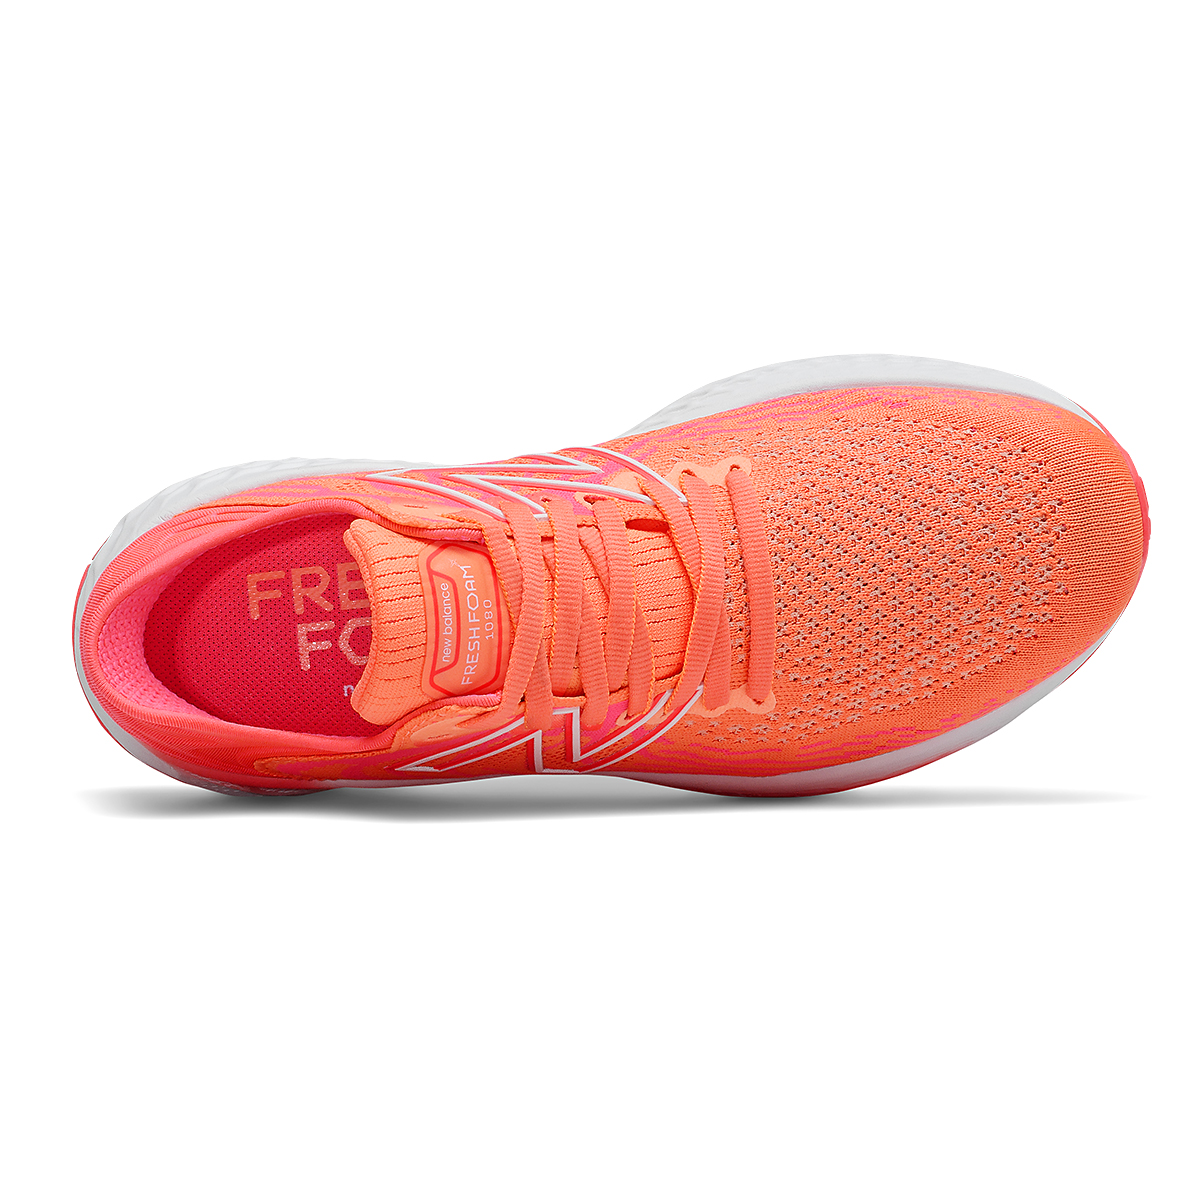 Women's New Balance 1080v11 Running Shoe - Color: Citrus Punch/Vivid Coral - Size: 5 - Width: Narrow, Citrus Punch/Vivid Coral, large, image 4